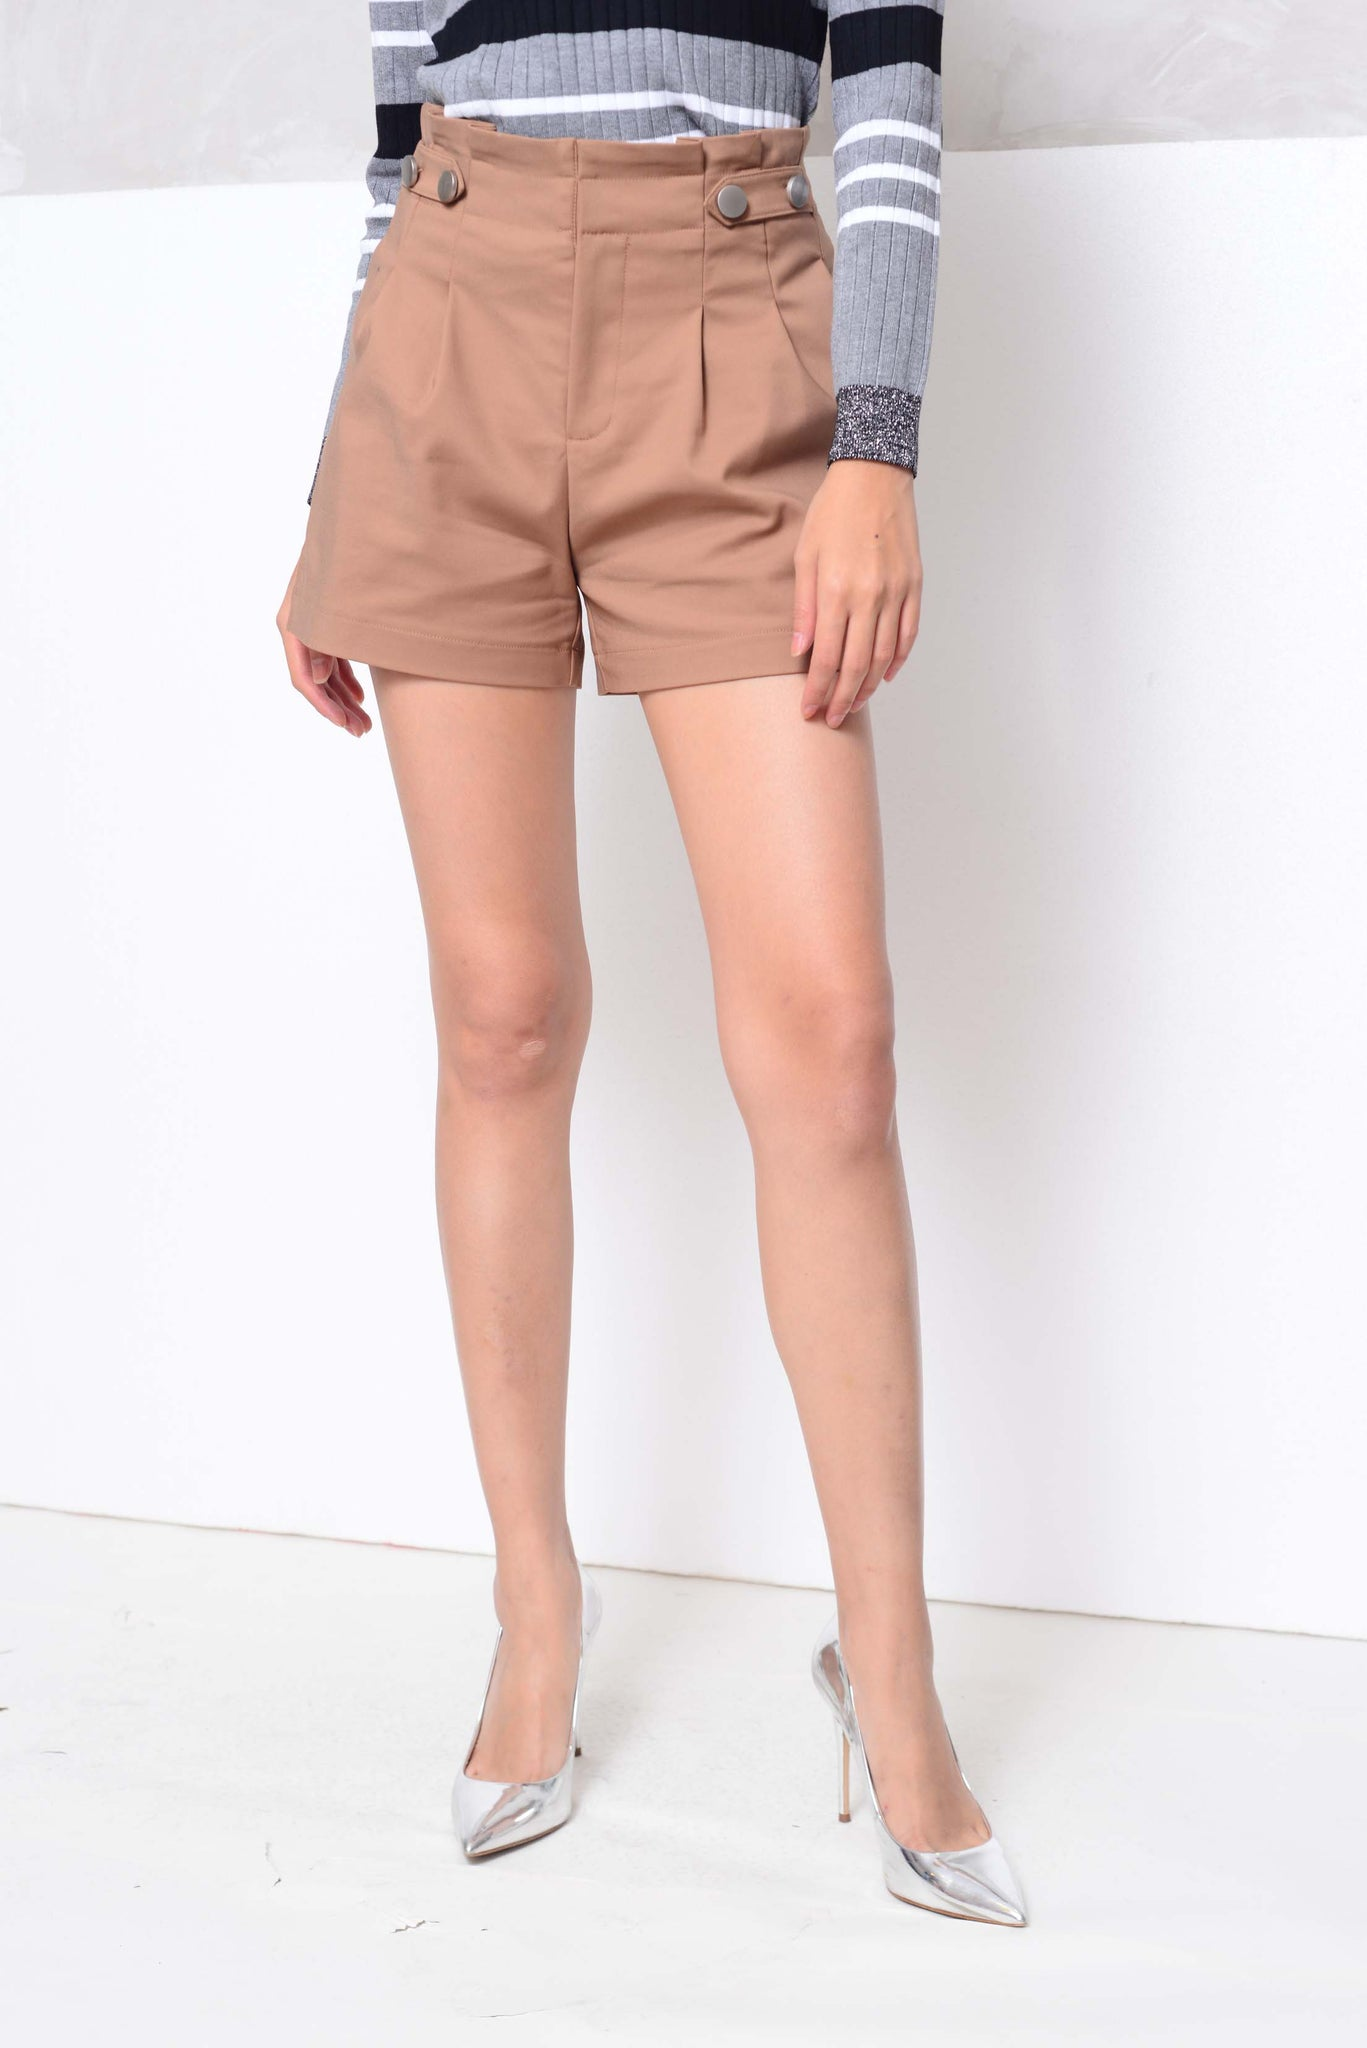 Basics-High waited flare shorts in brown